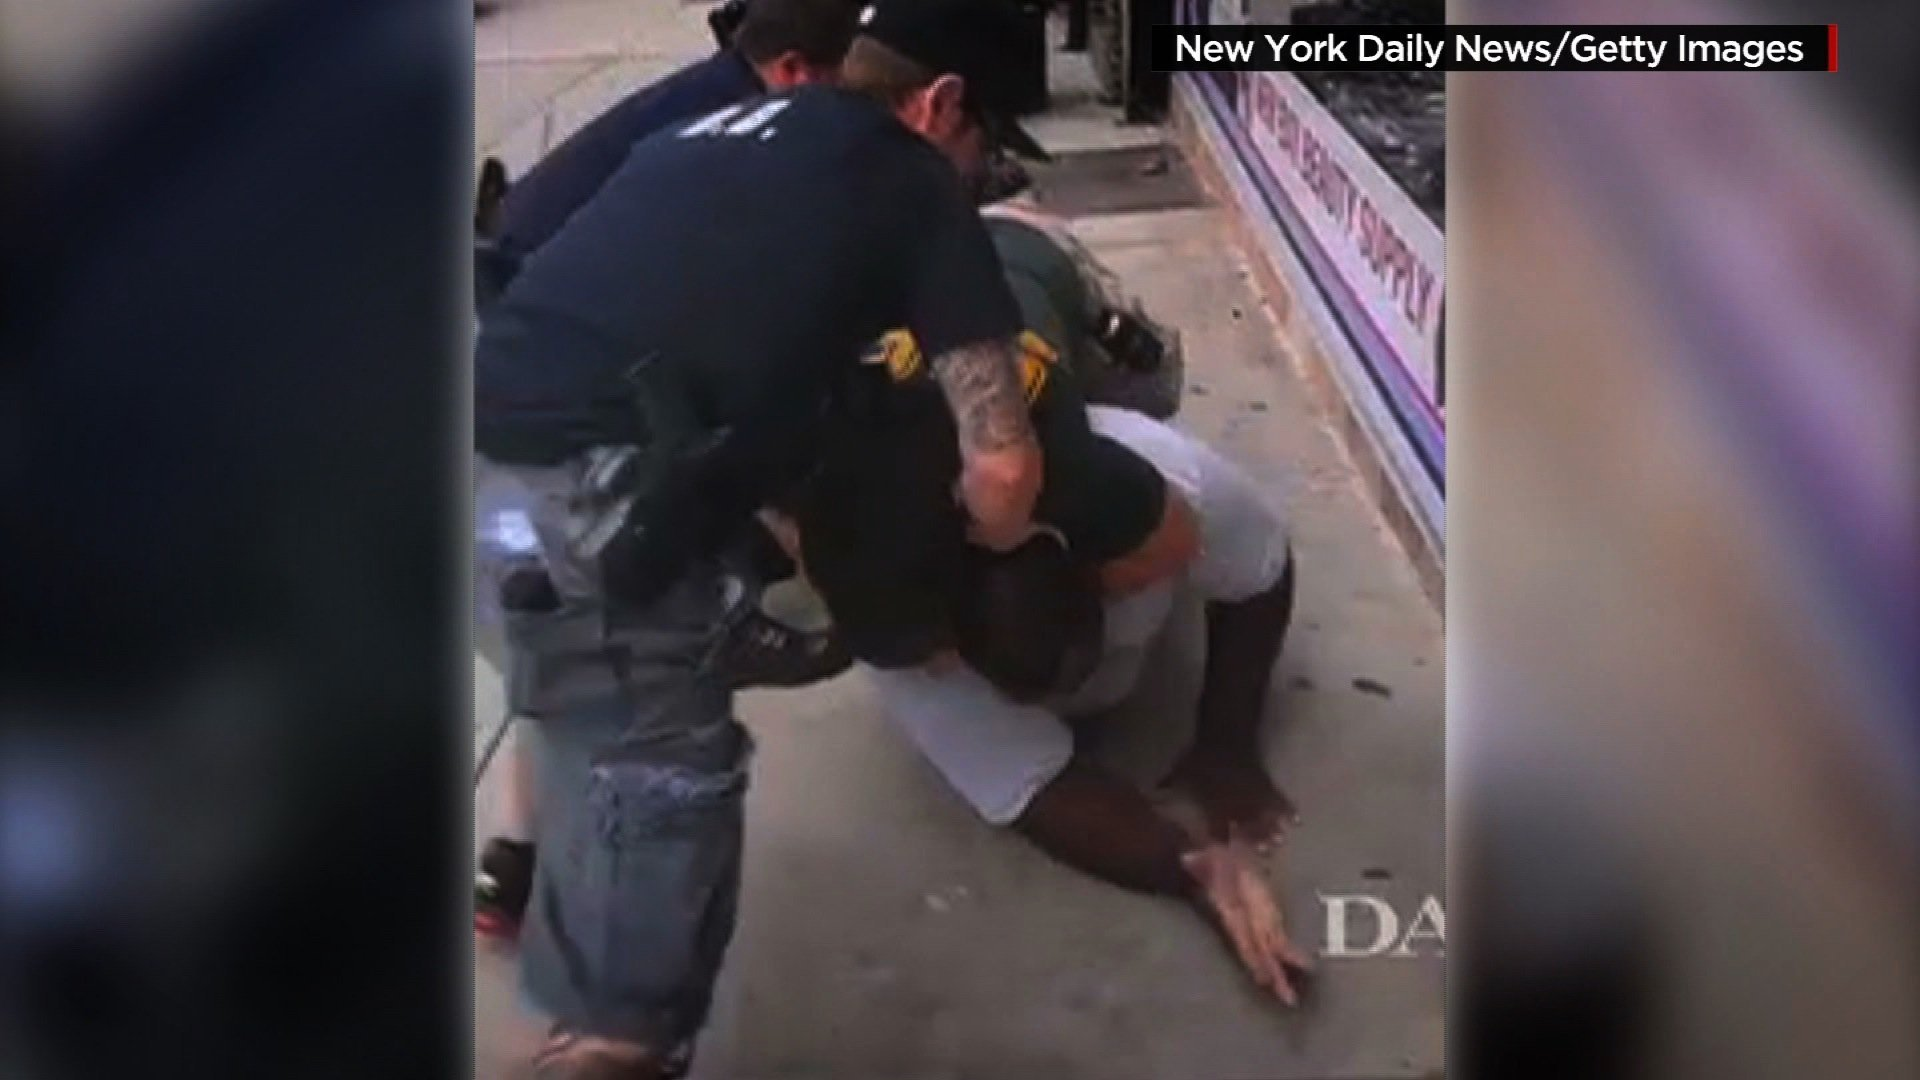 Prosecutors say they could not prove NYPD officer acted willfully in Eric Garner's death